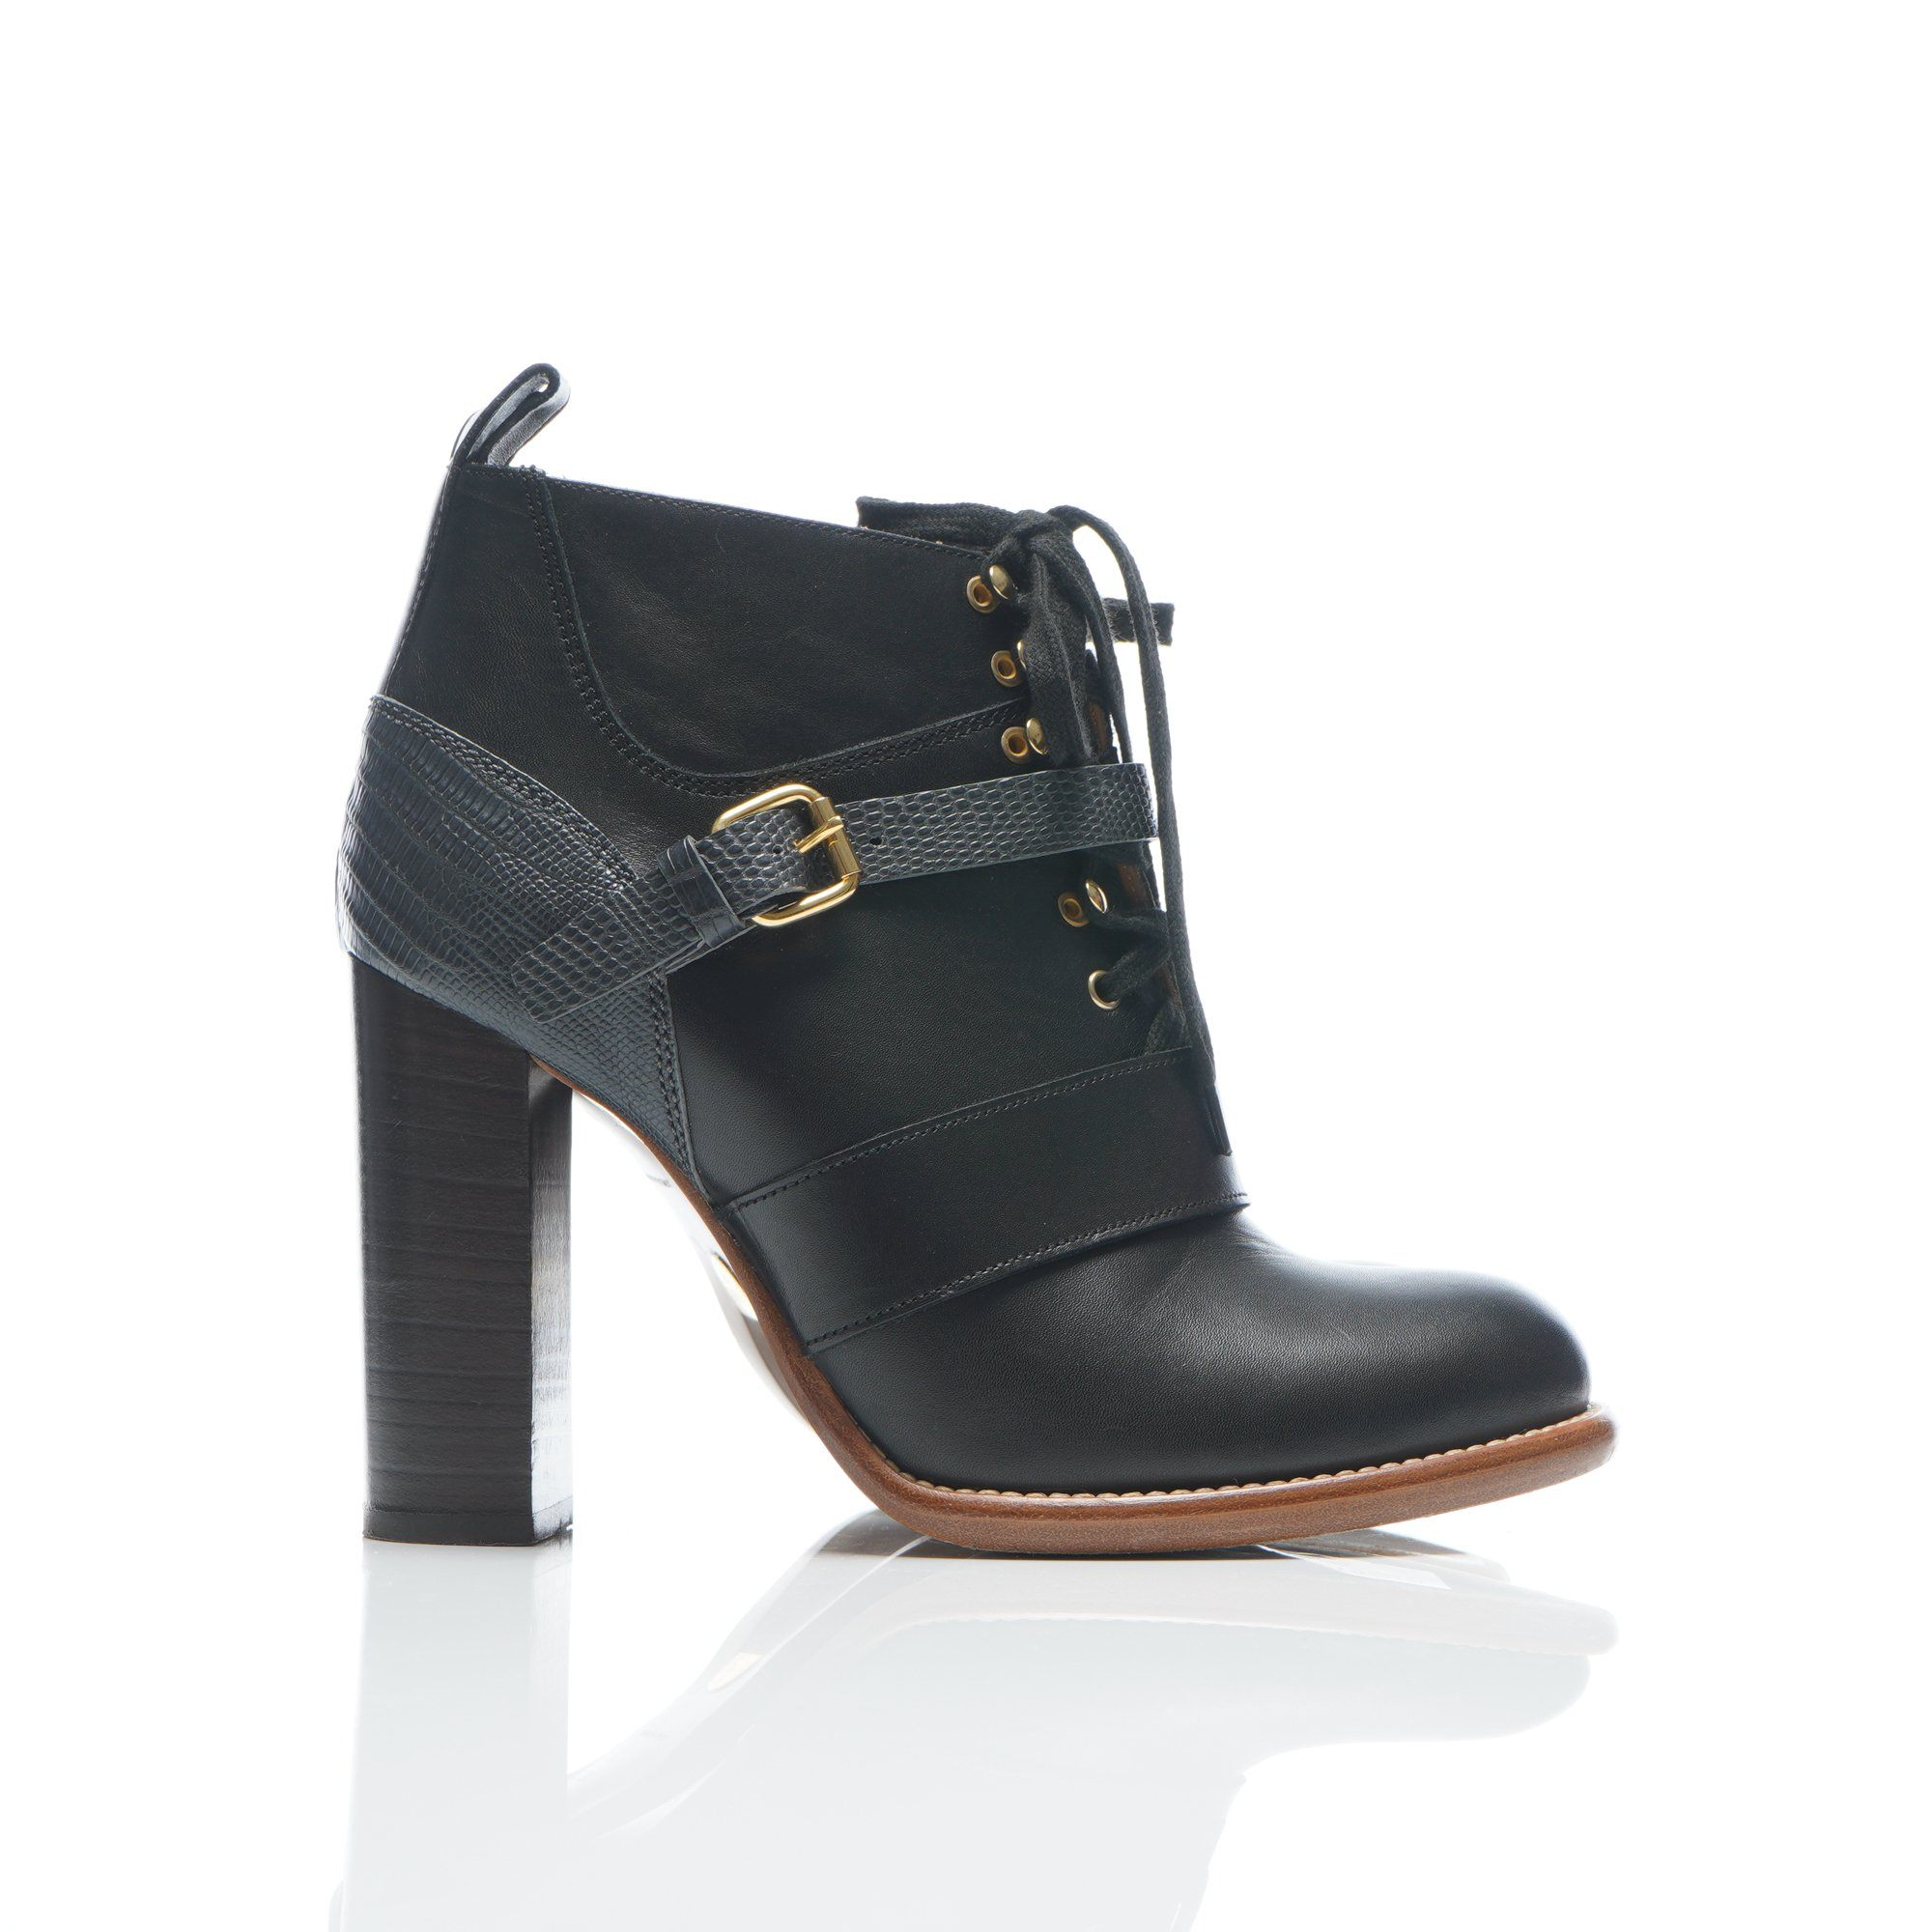 Chloe Black Leather Ankle Chunky Heel Bootie